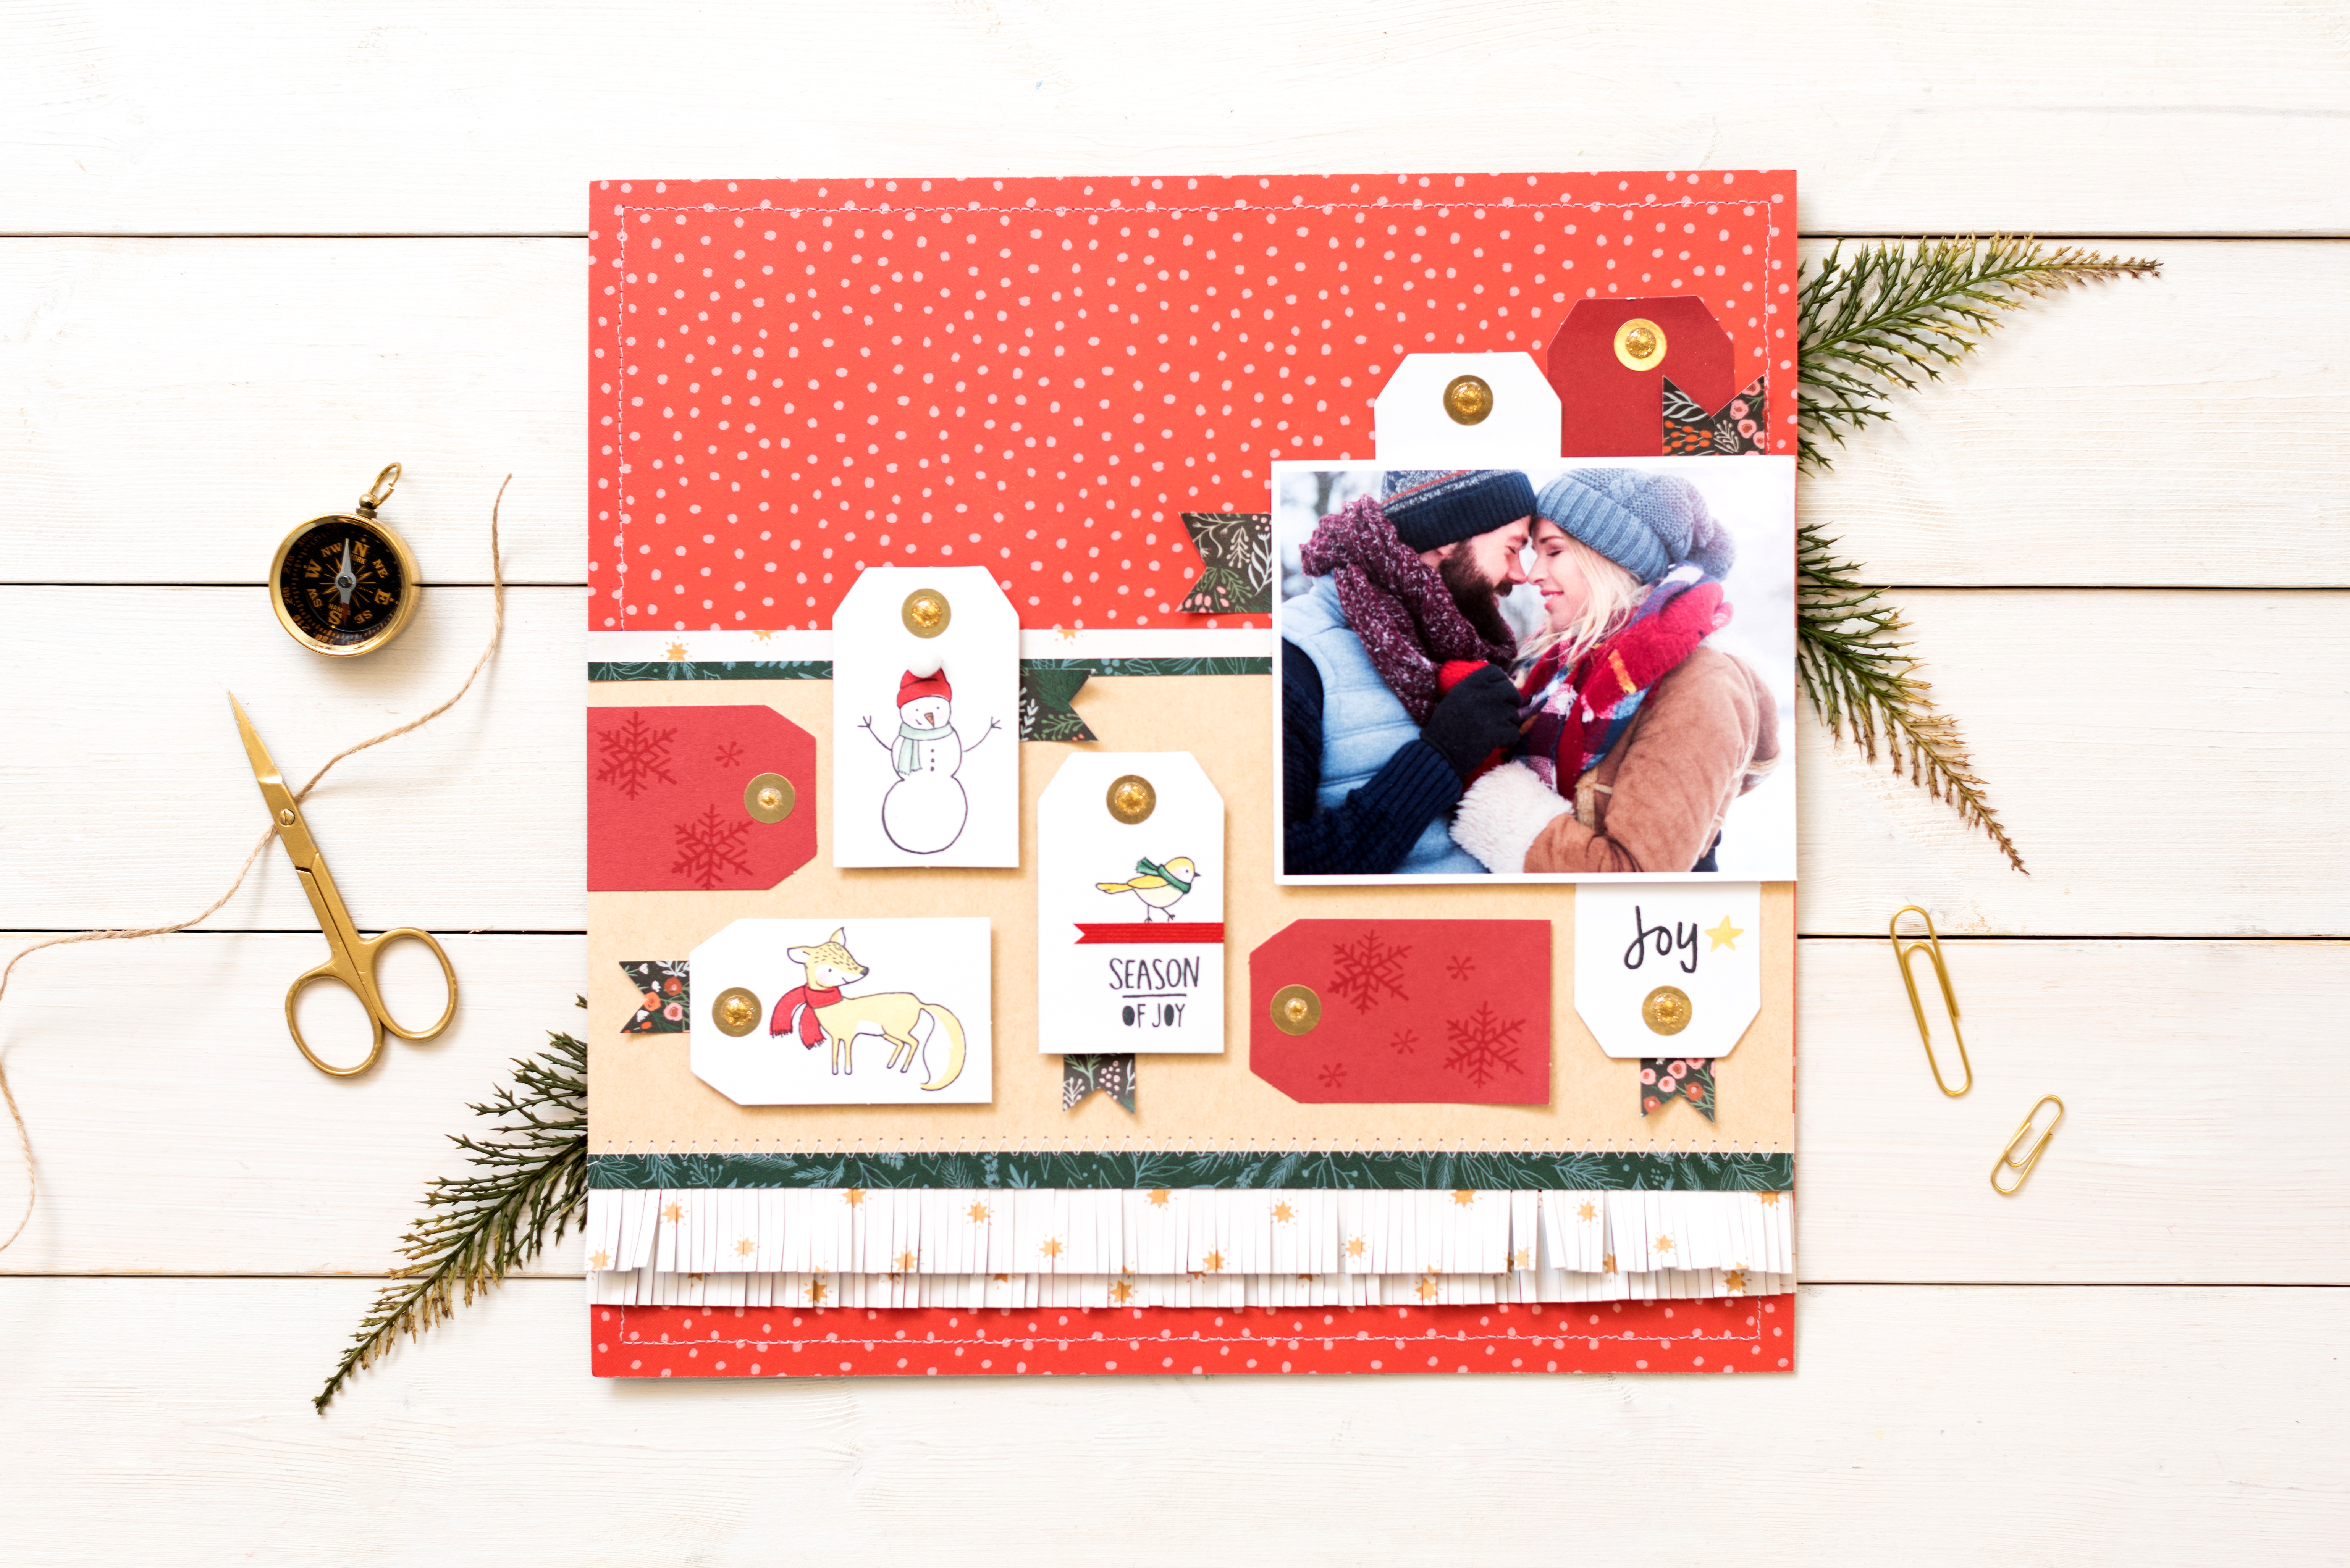 Holiday Scrapbook Page featuring the We R Memory Keepers Precision Press Advanced